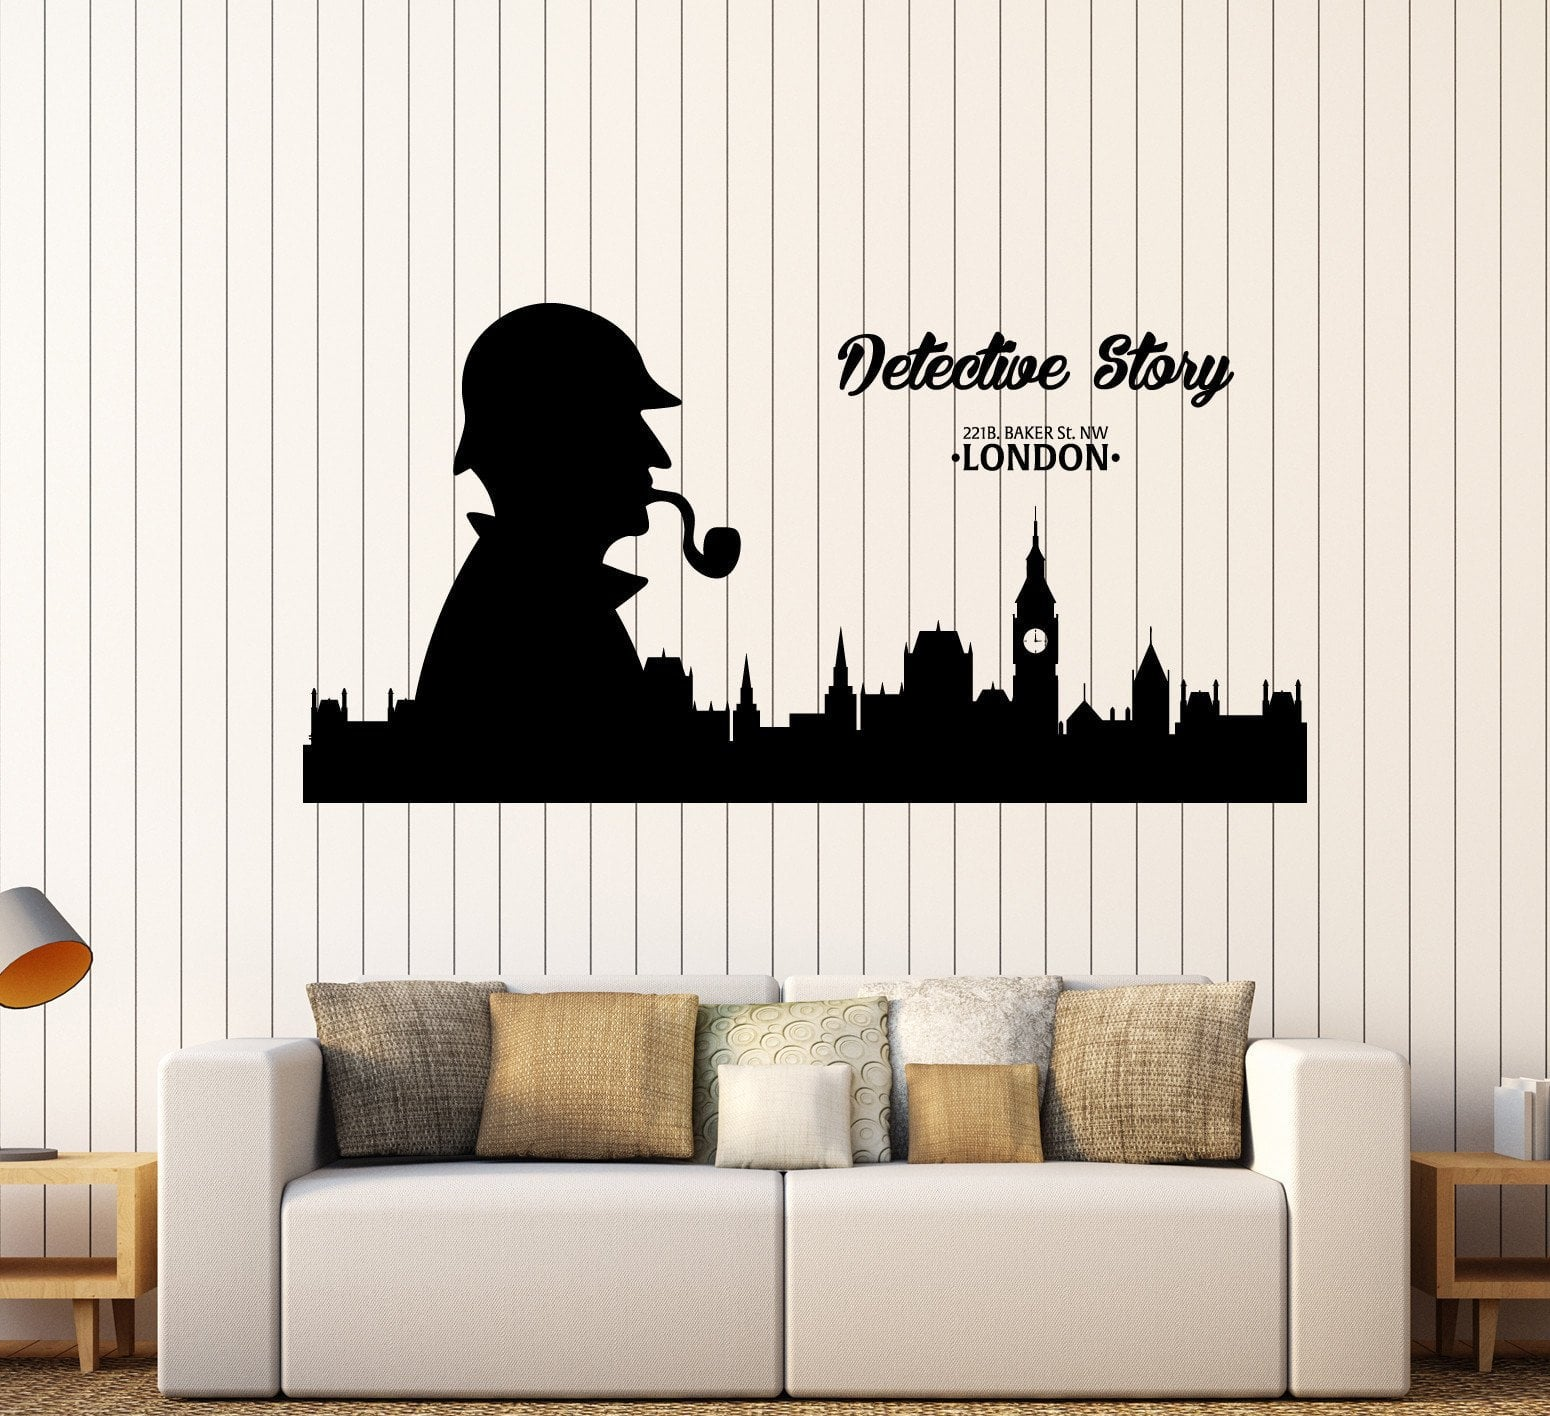 Large Wall Vinyl Decal London Sherlock Holmes Detective Story Unique Gift z4527